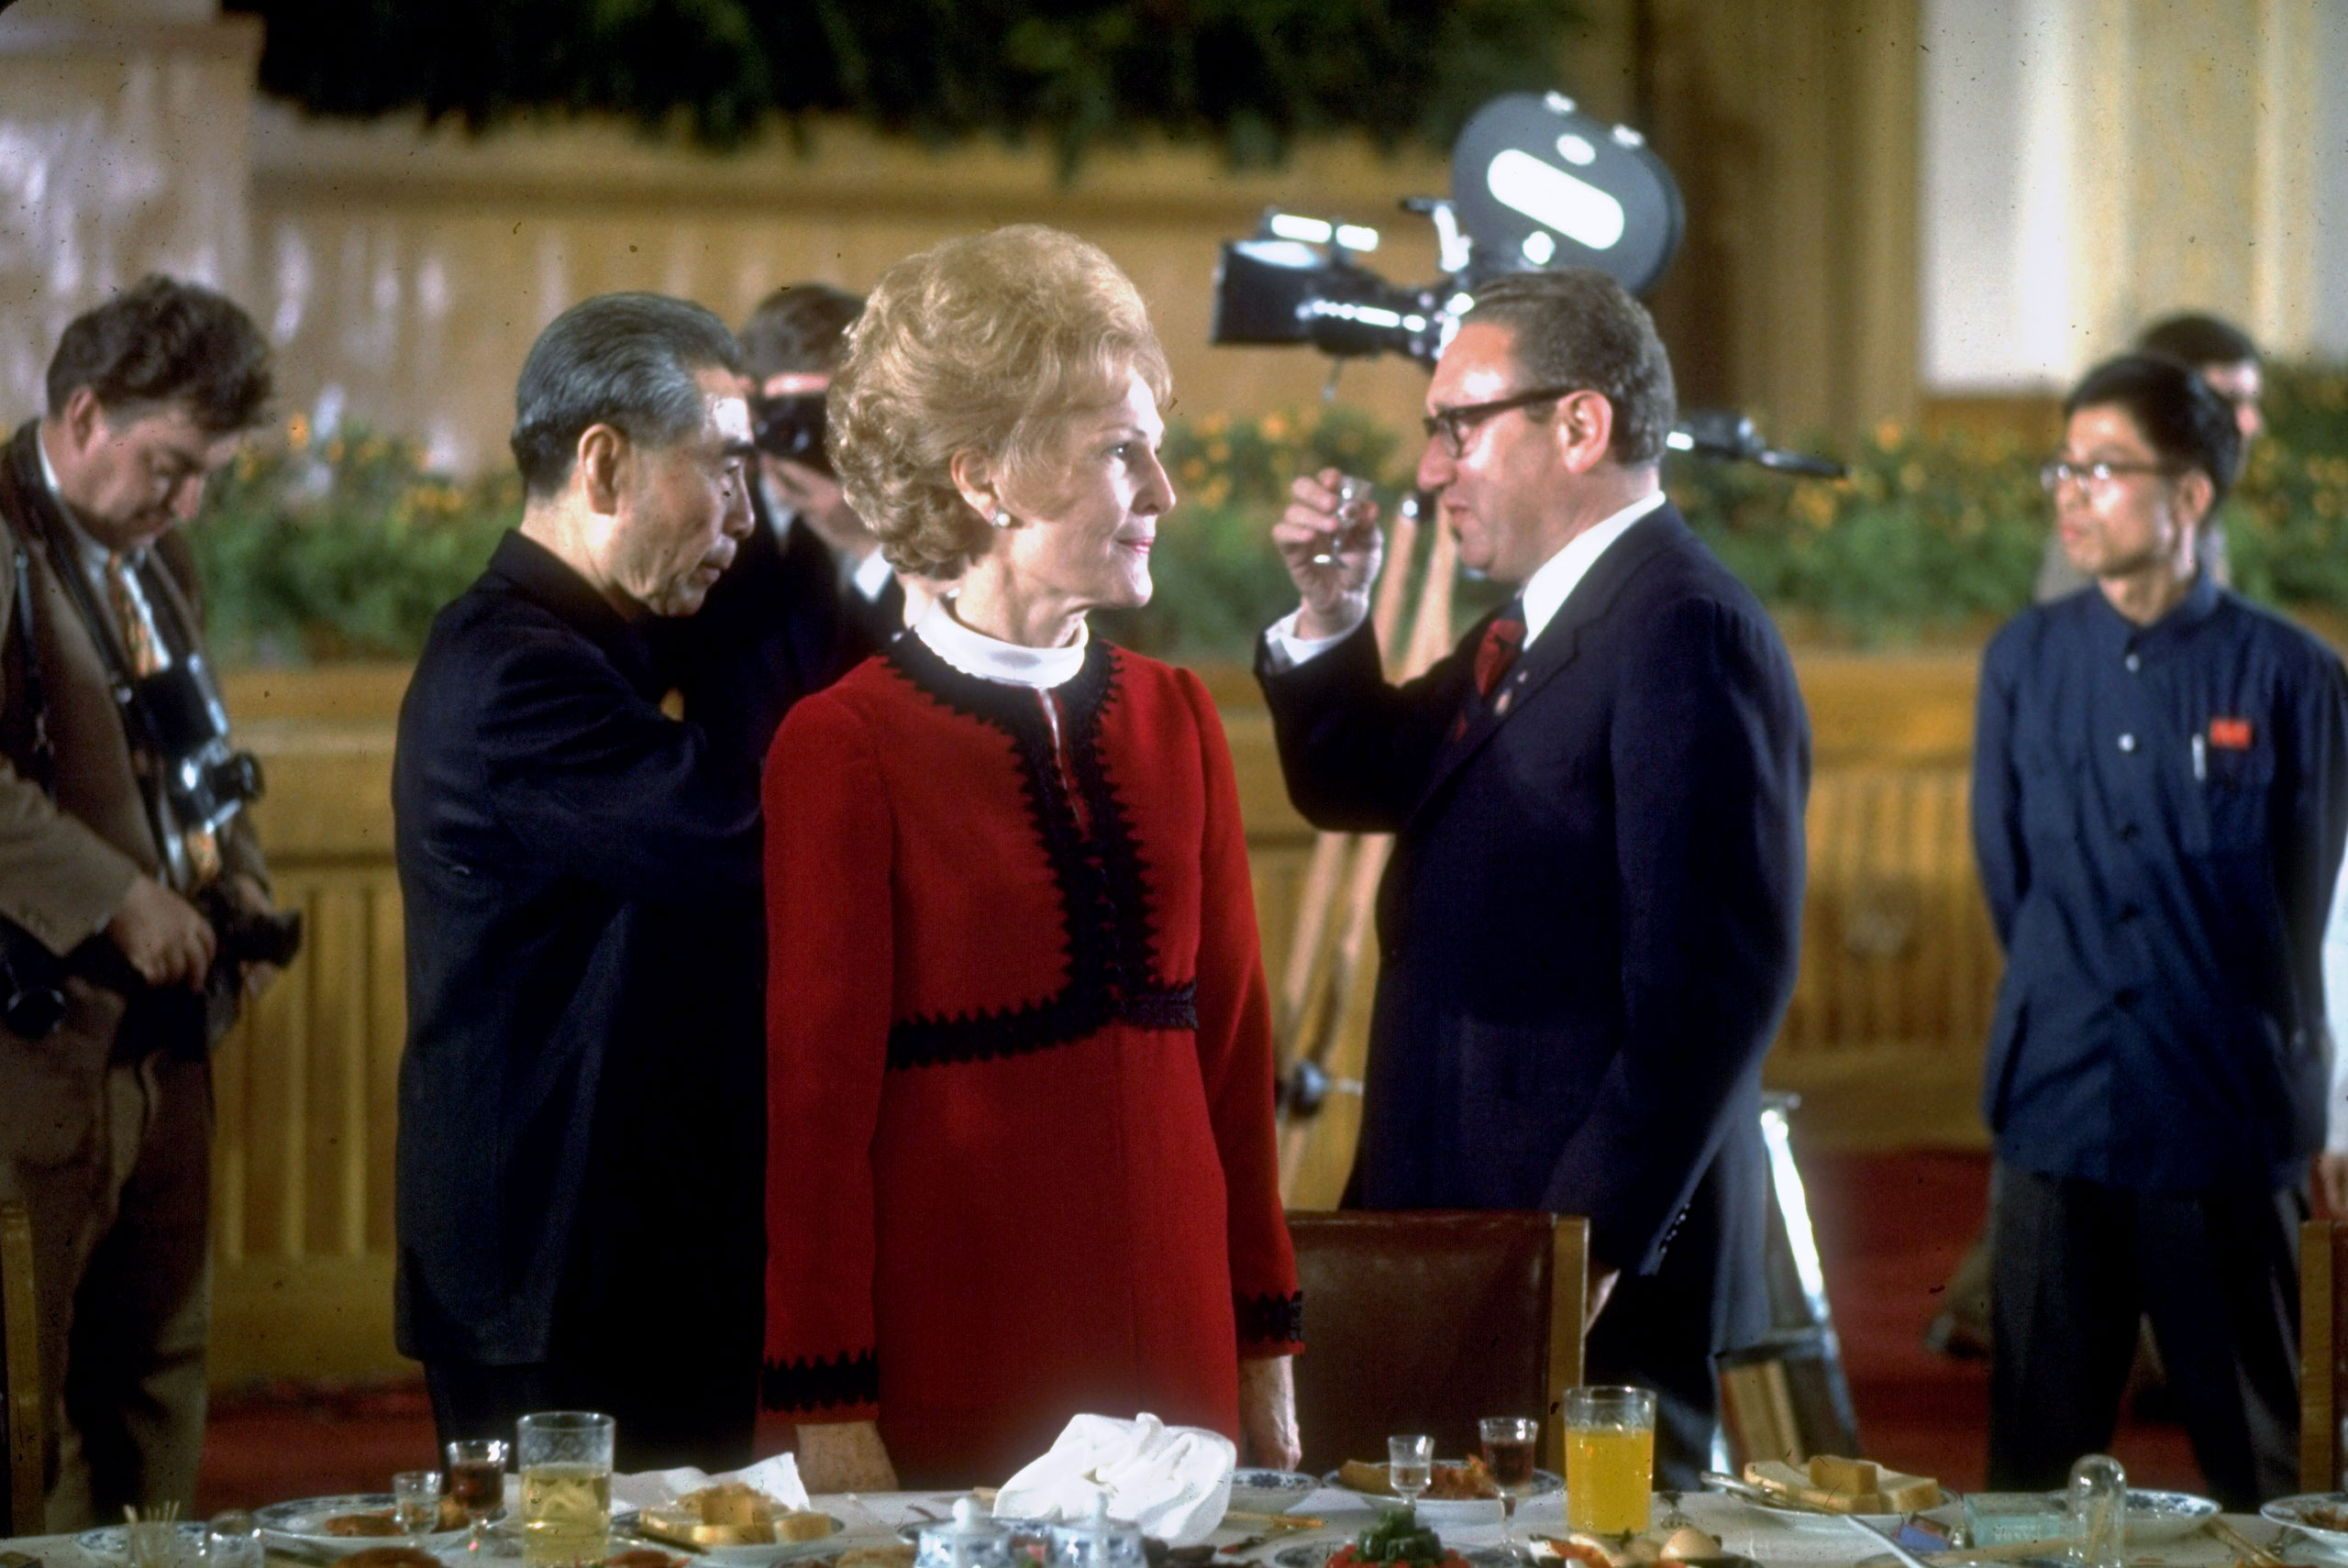 Chinese premier Chou-En-Lai, First Lady Pat Nixon and Secretary of State Henry Kissinger during Nixon's visit to China, 1972.